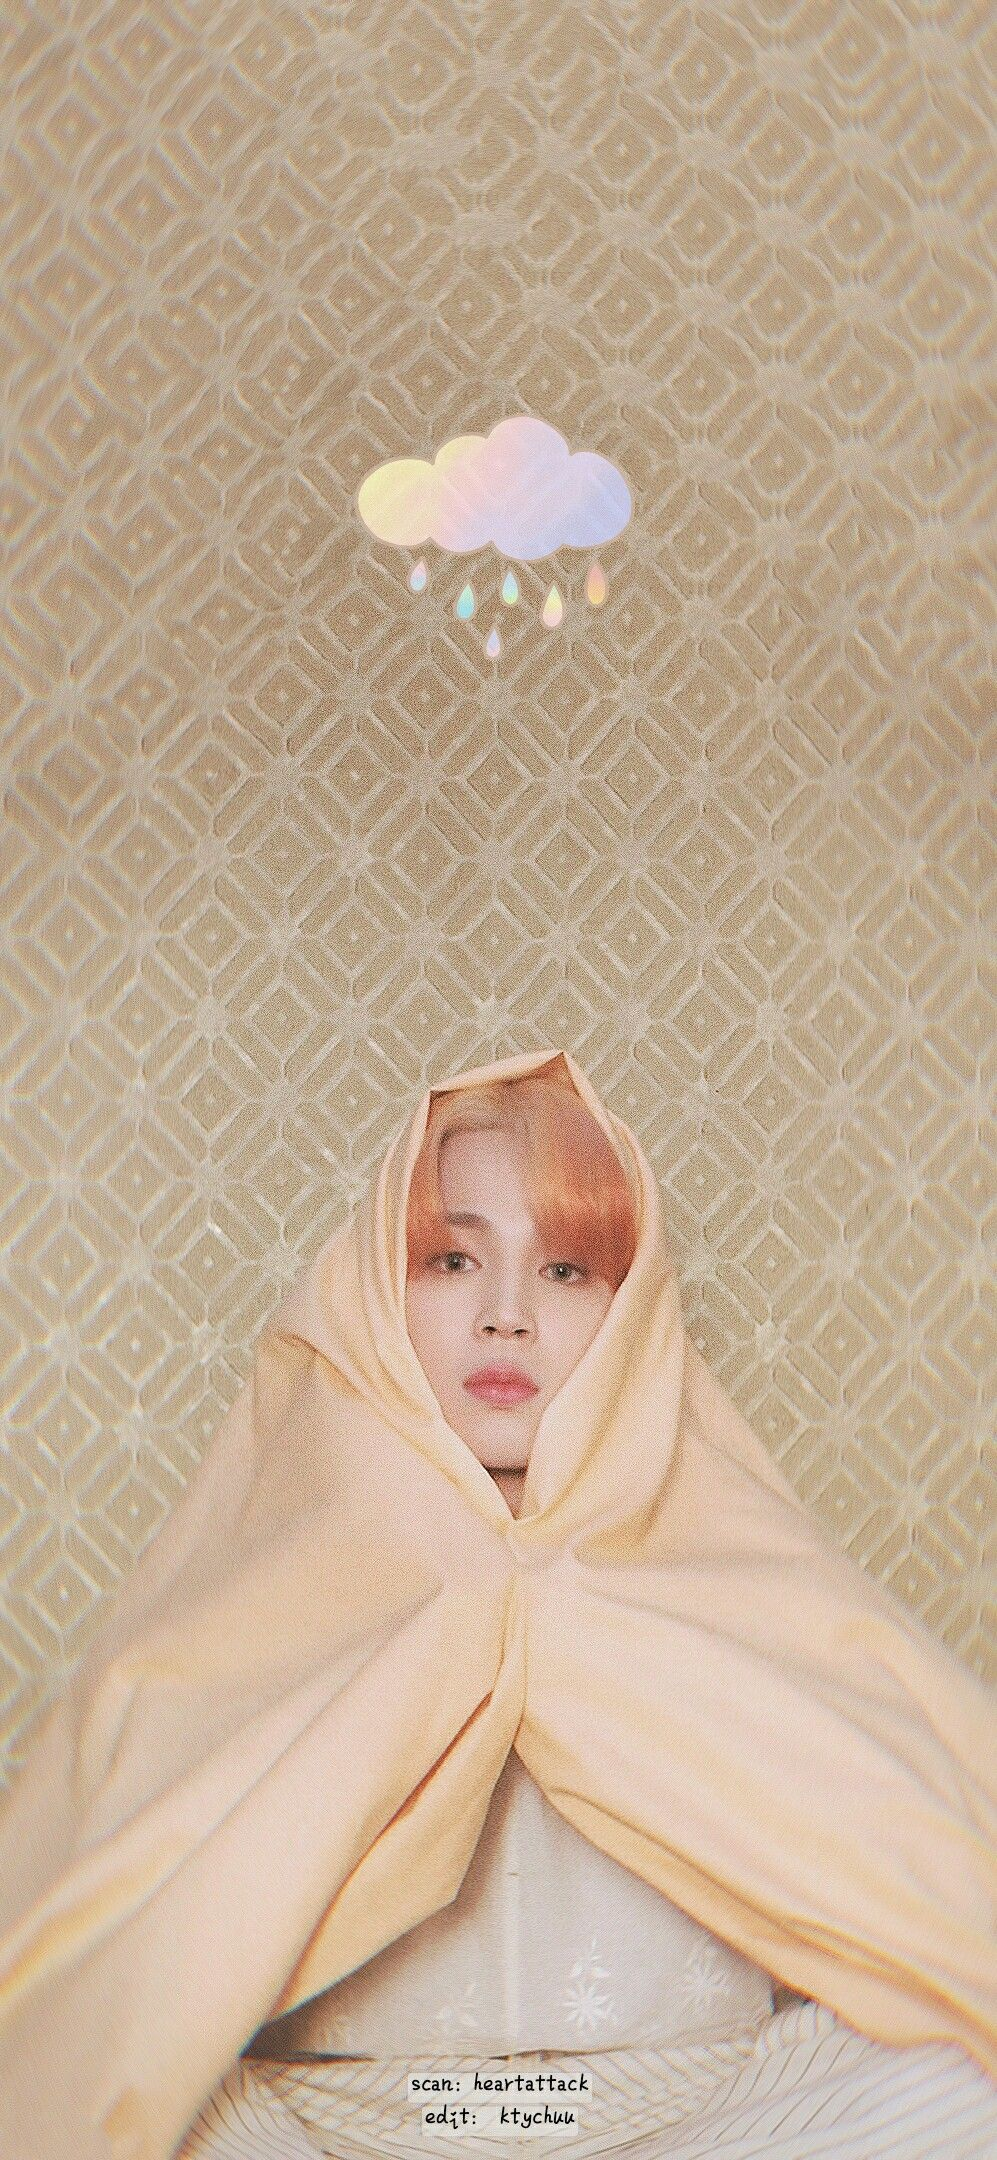 Bts Edits Bts Wallpapers Bts Map Of The Soul Persona Pls Make Sure To Follow Me Before U Save It Find More On My Account Pls